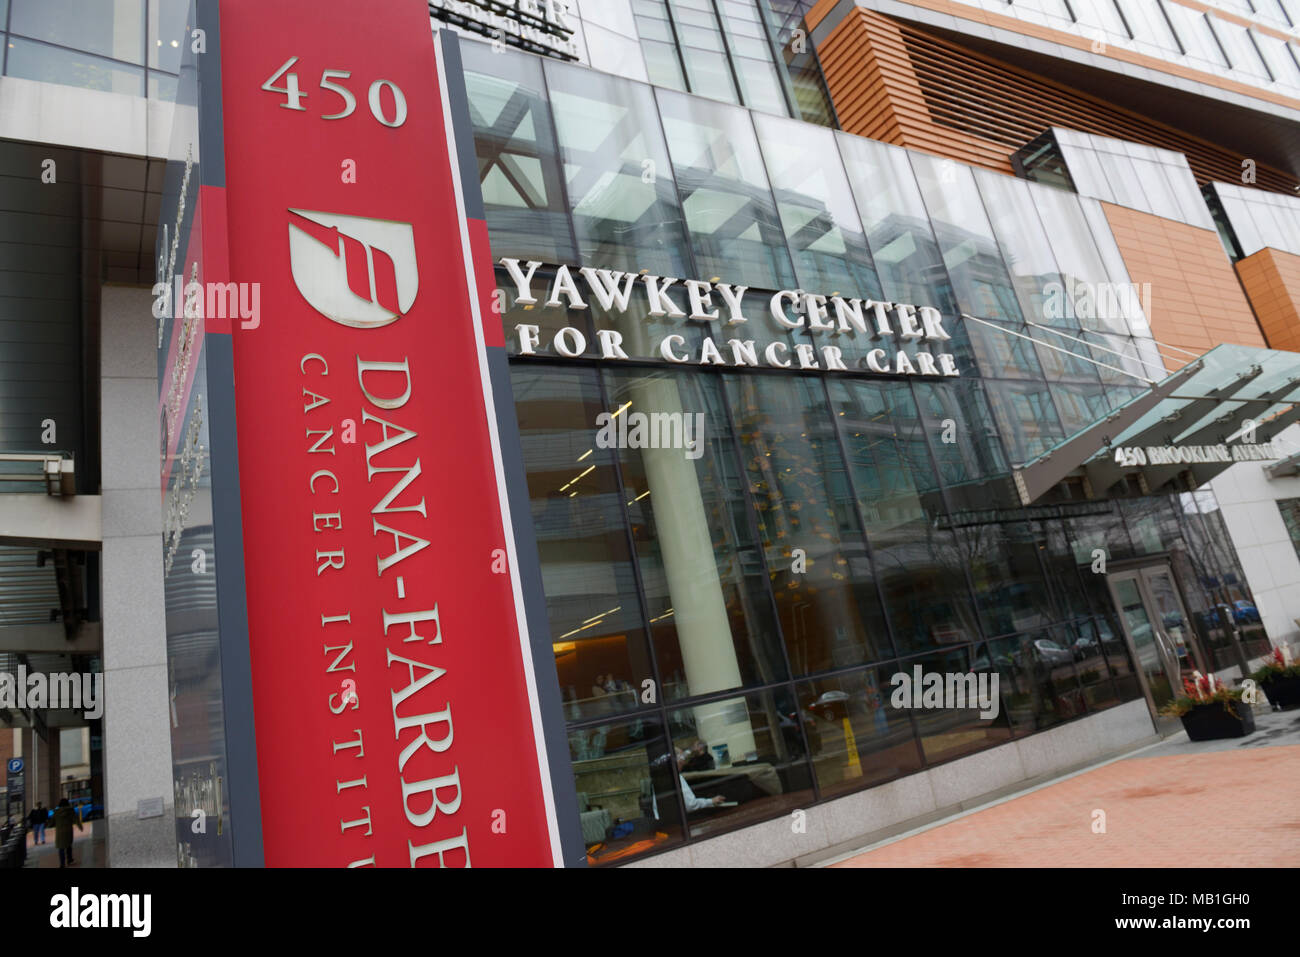 Dana-Farber Cancer Institute, berühmte Cancer research Hospital in Boston, MA Stockbild